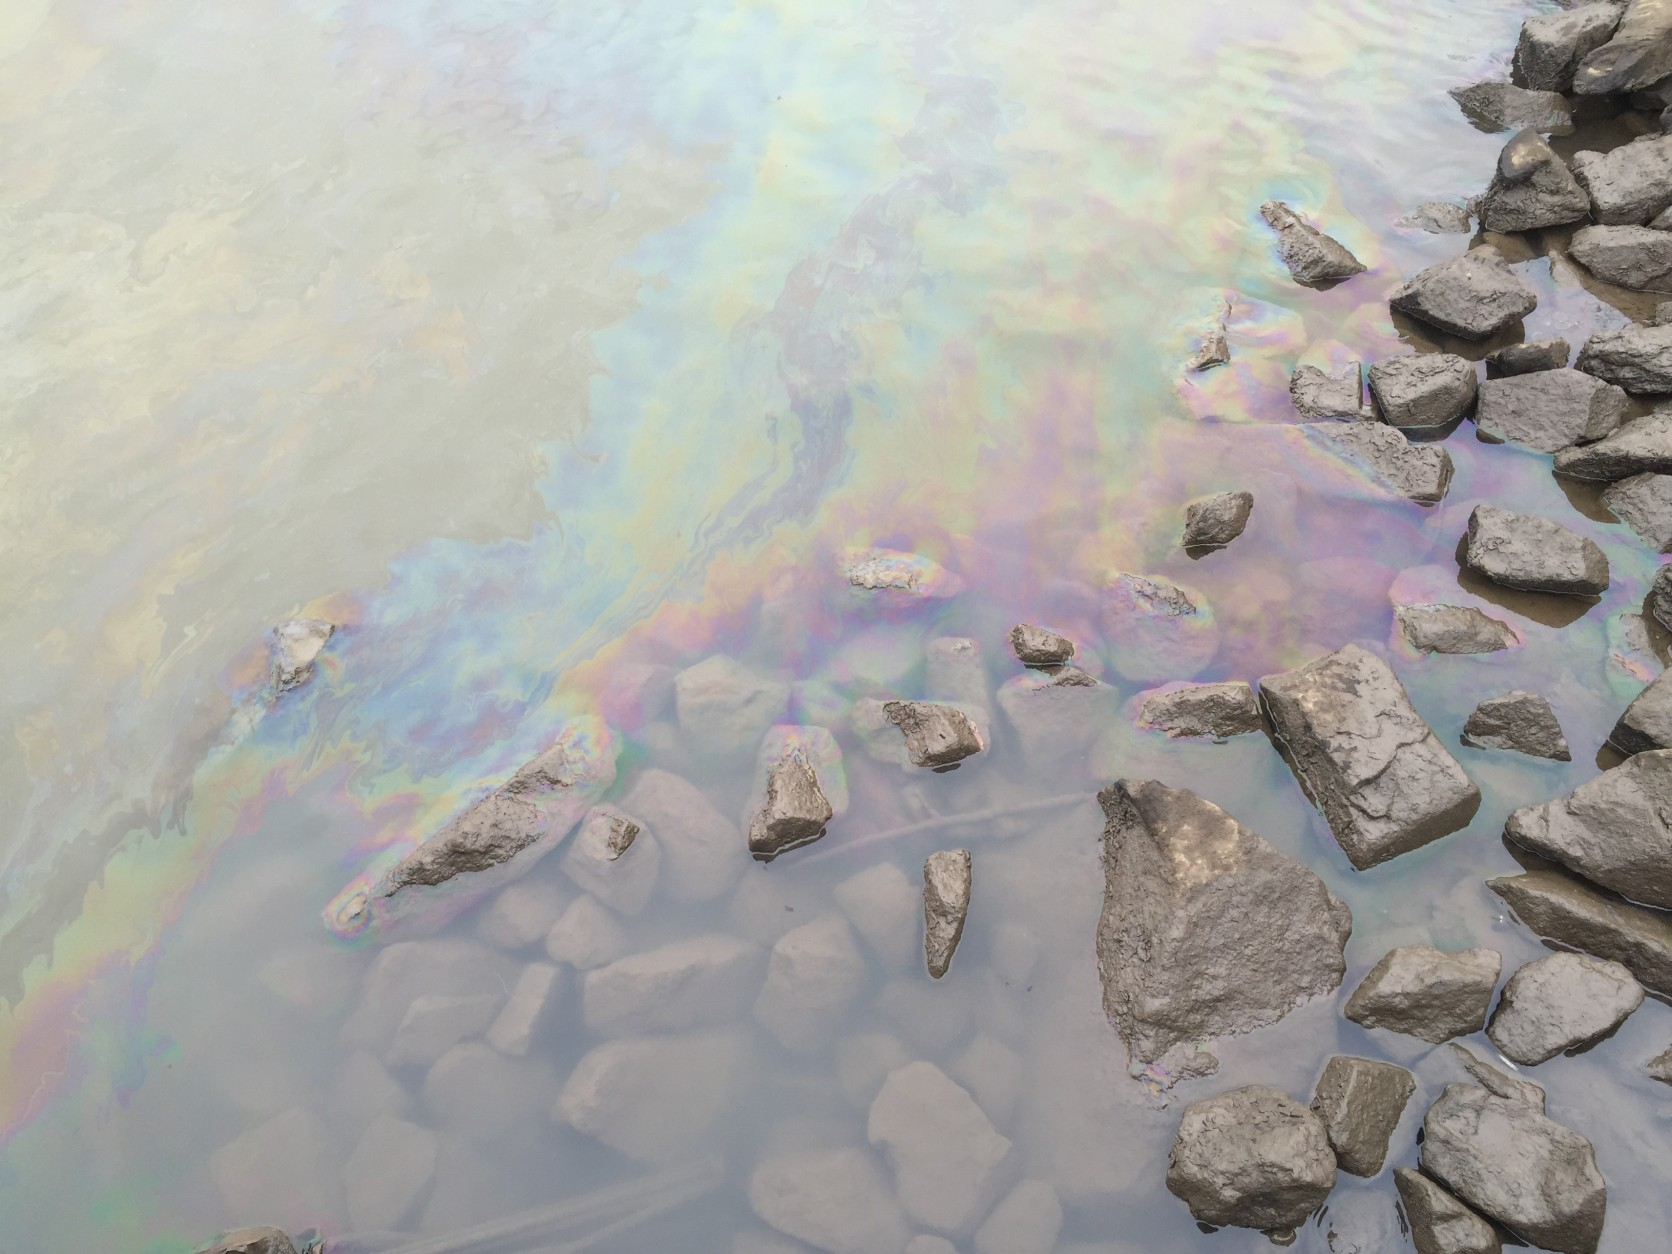 A rainbow-colored oil film can still be seen in the water near Gravelly Point Park. (WTOP/Mike Murillo)